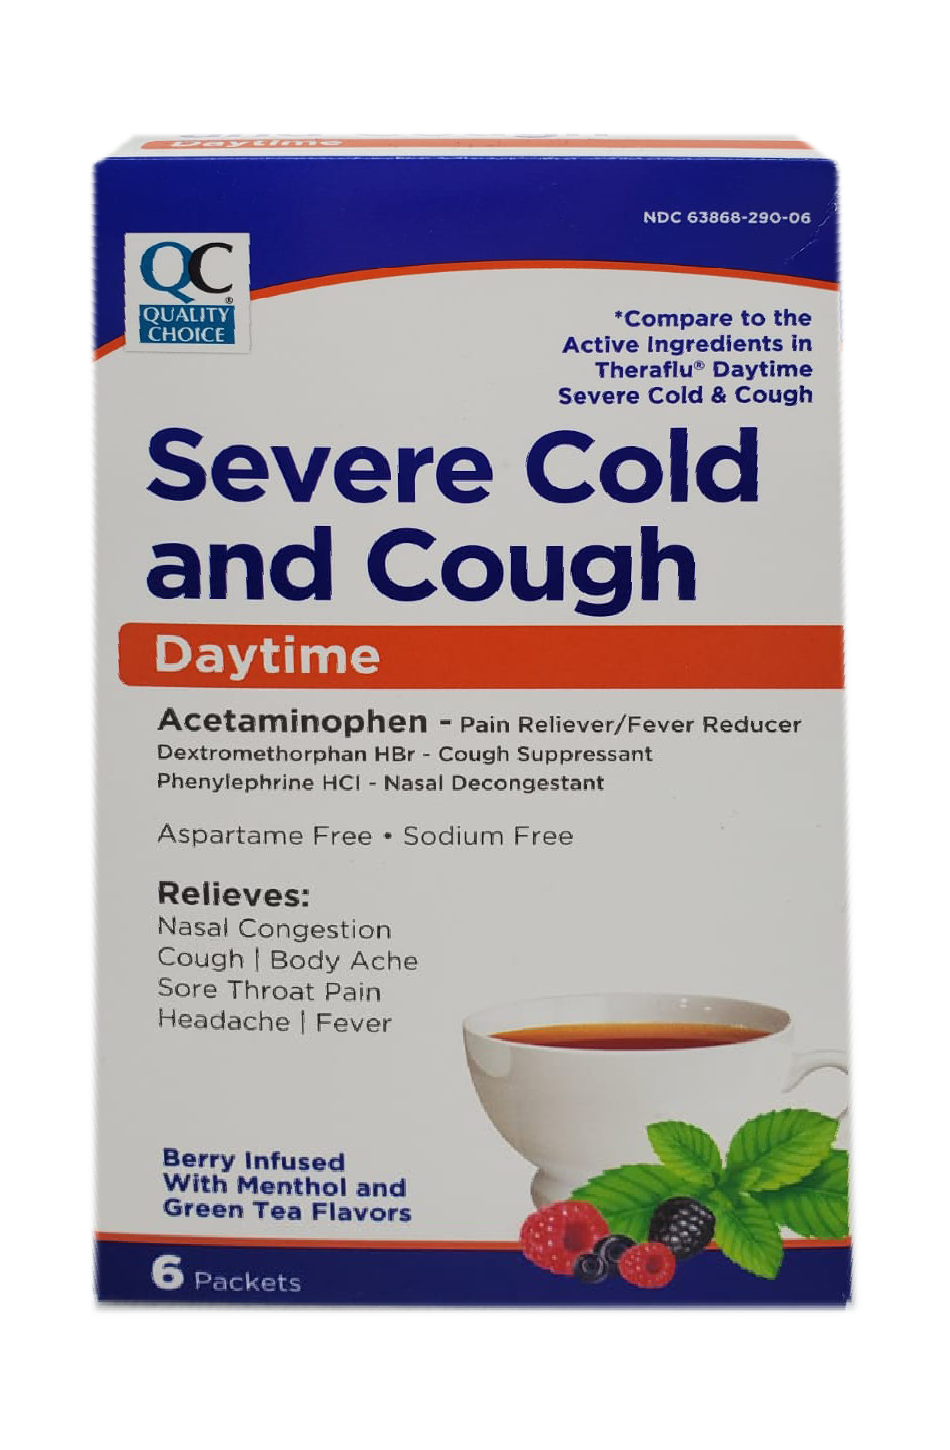 Severe Cold and Cough Daytime